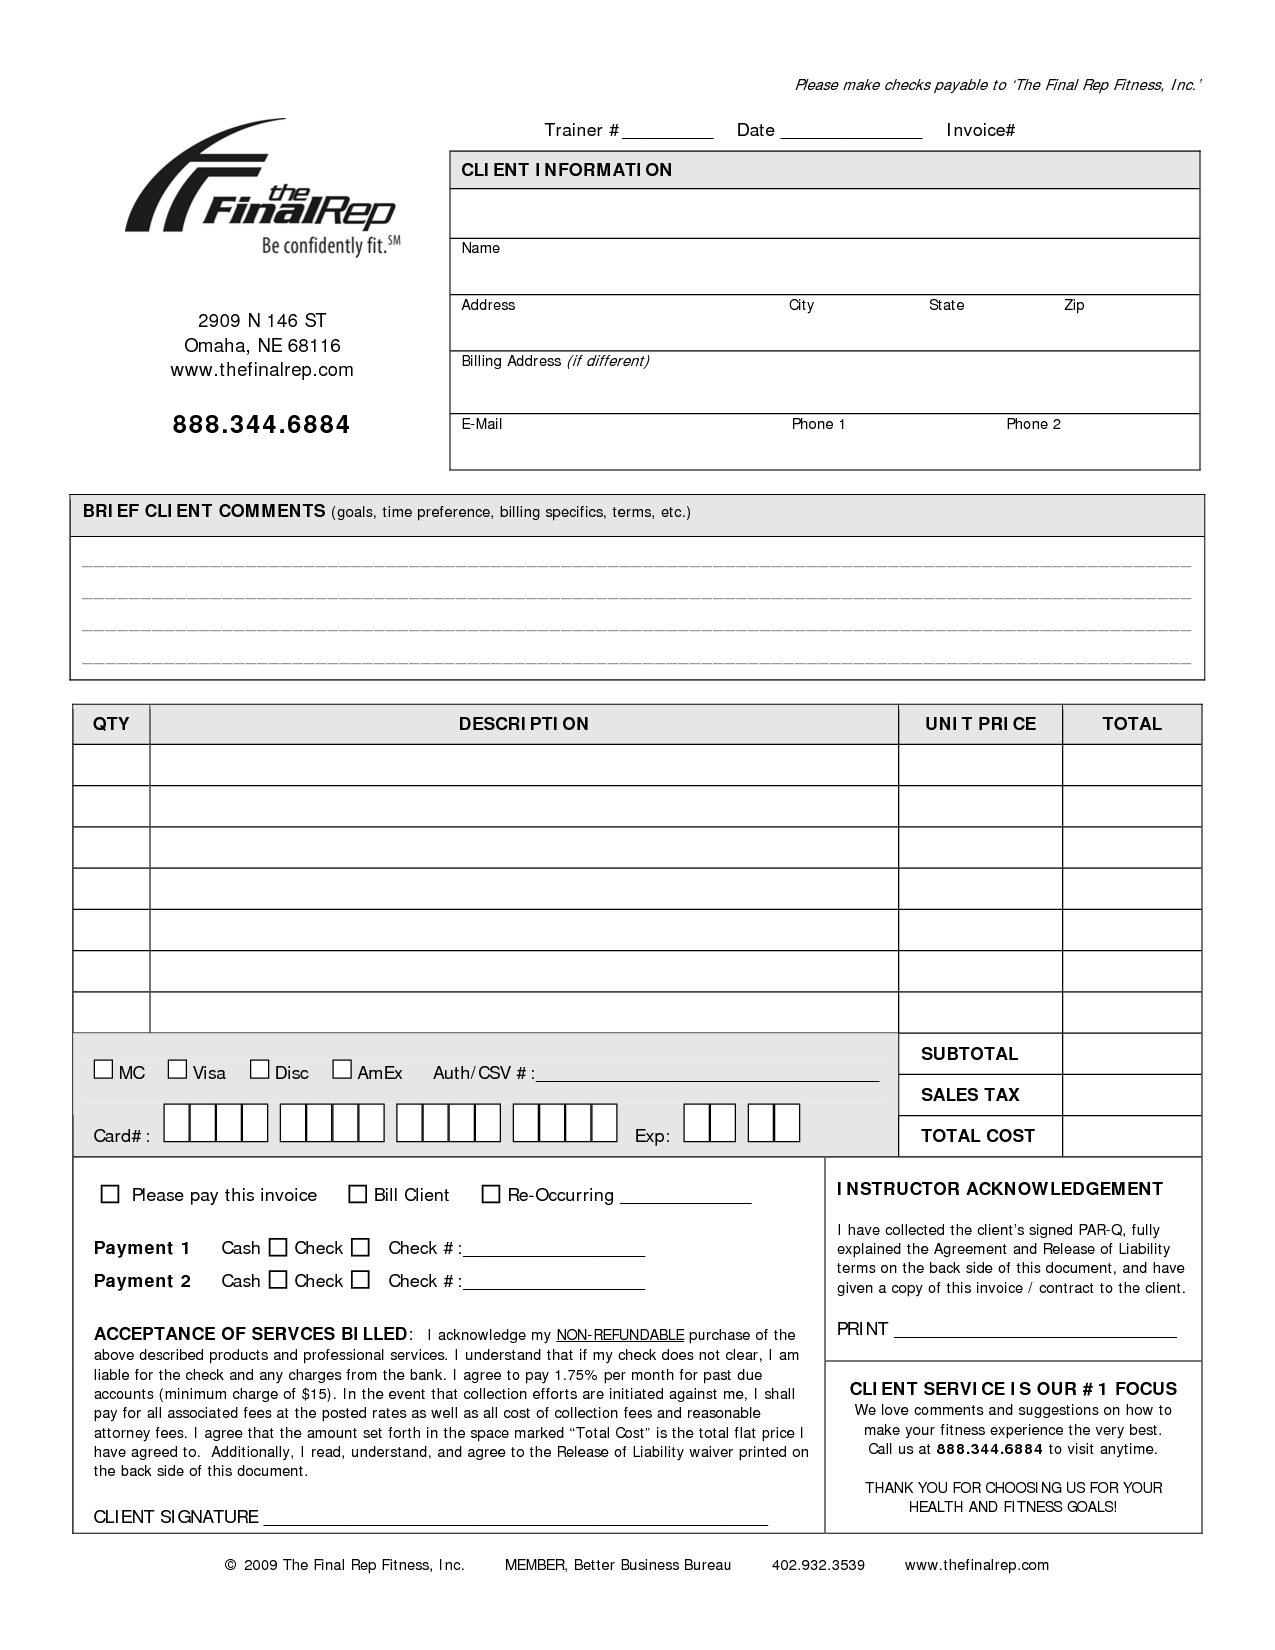 Personal invoice template invoice example for Personal training program template